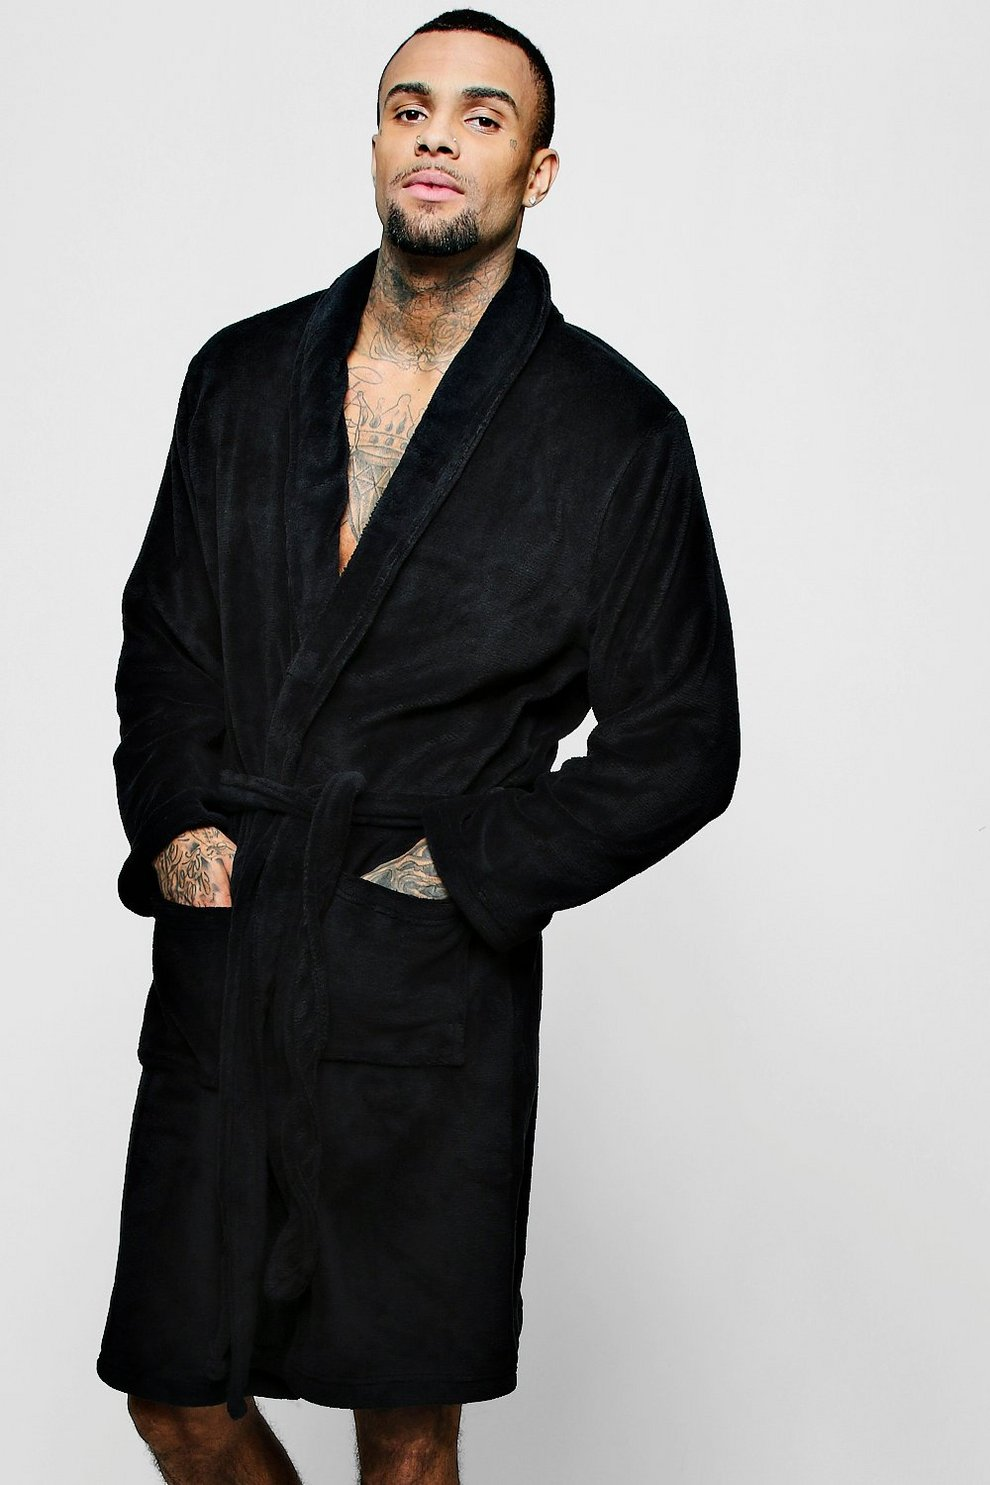 66bf0c66cc Collared Fleece Robe With Pockets